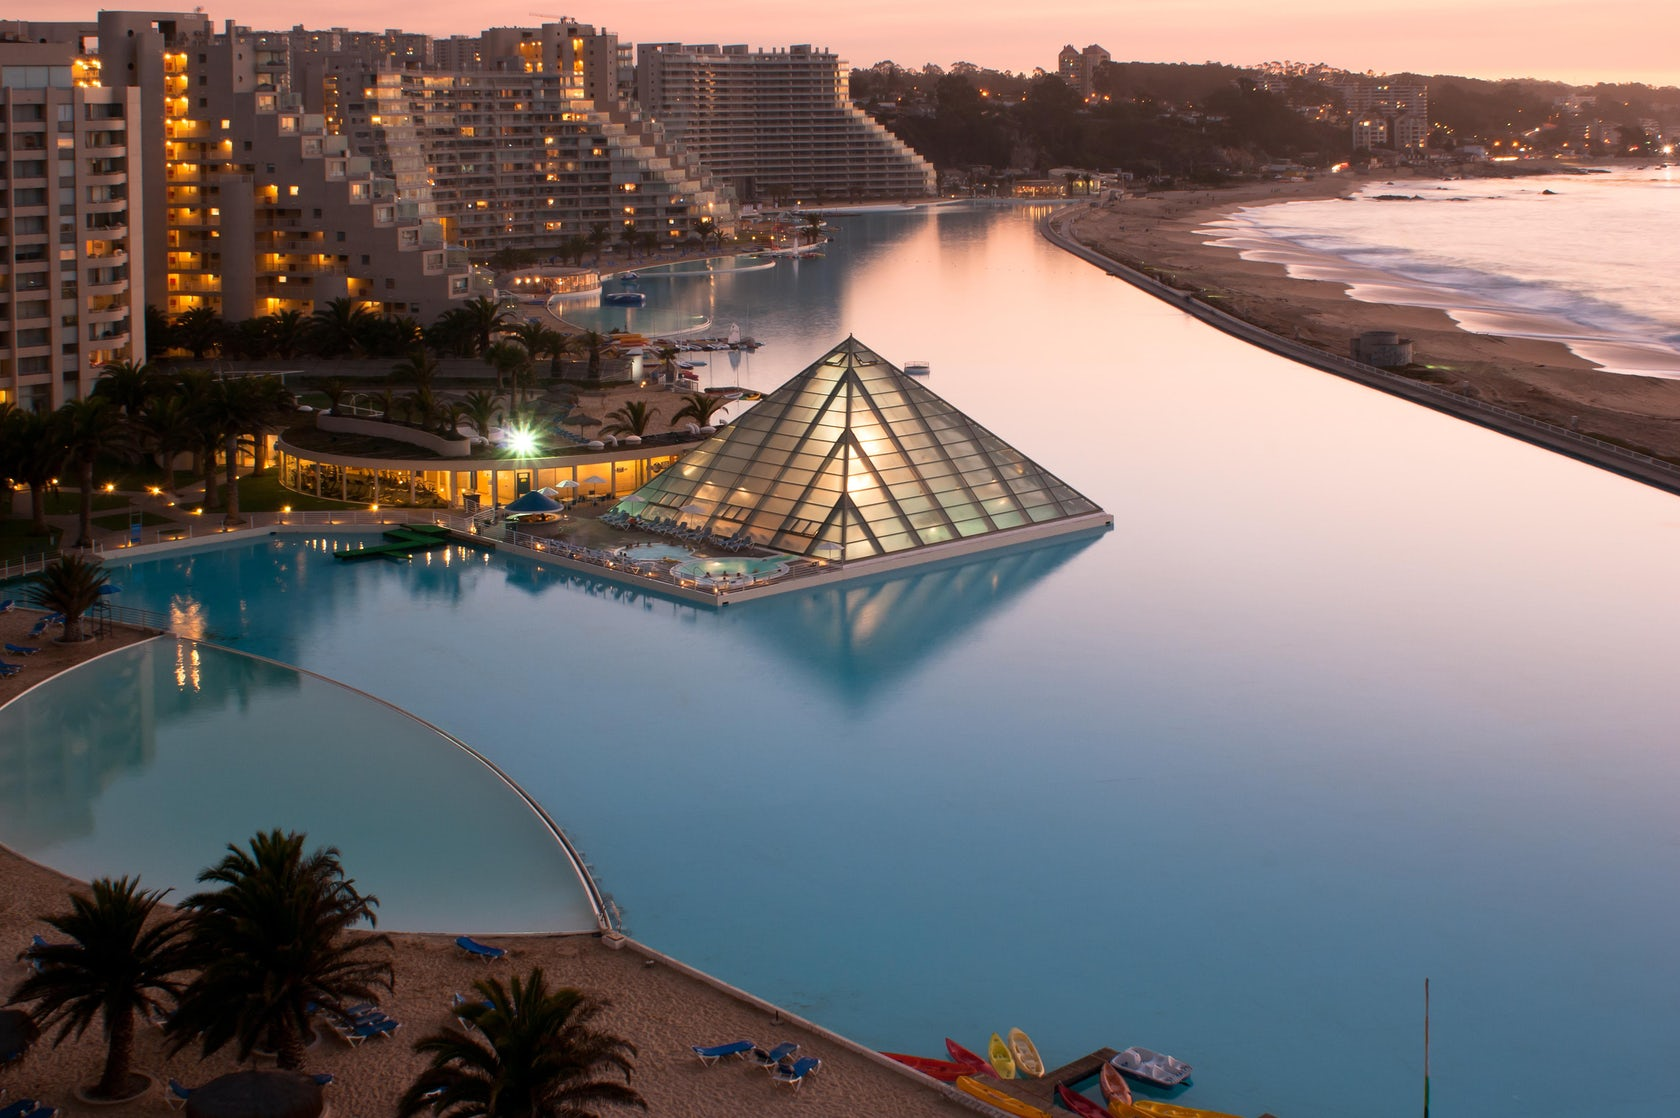 San alfonso del mar beach resort architizer for Les piscines